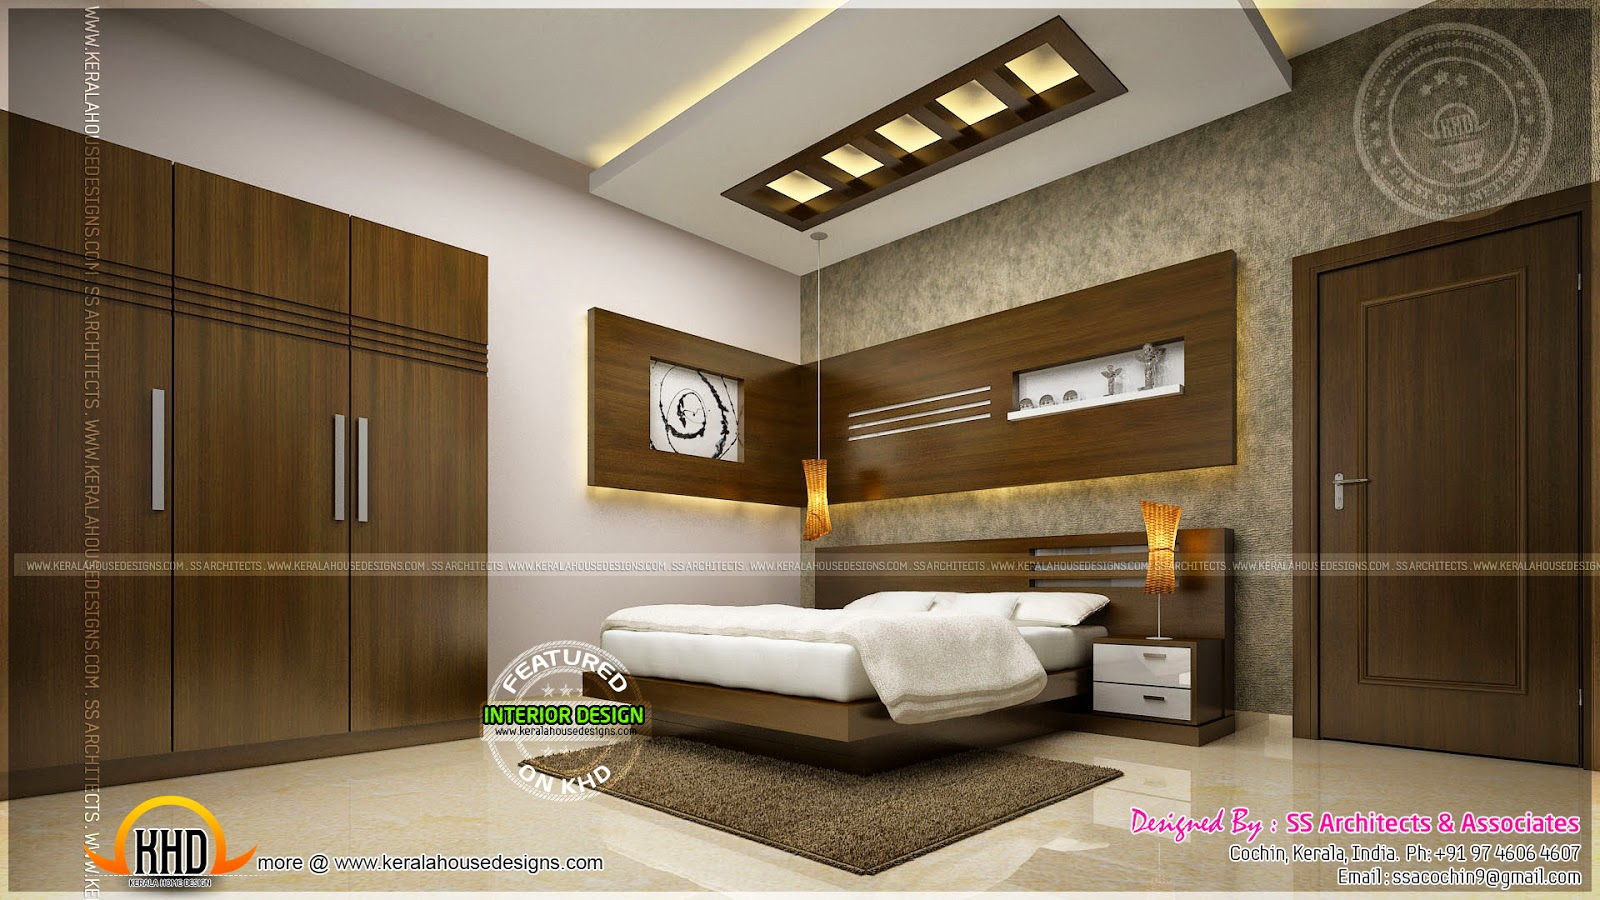 Awesome master bedroom interior kerala home design and for Interior bed design images